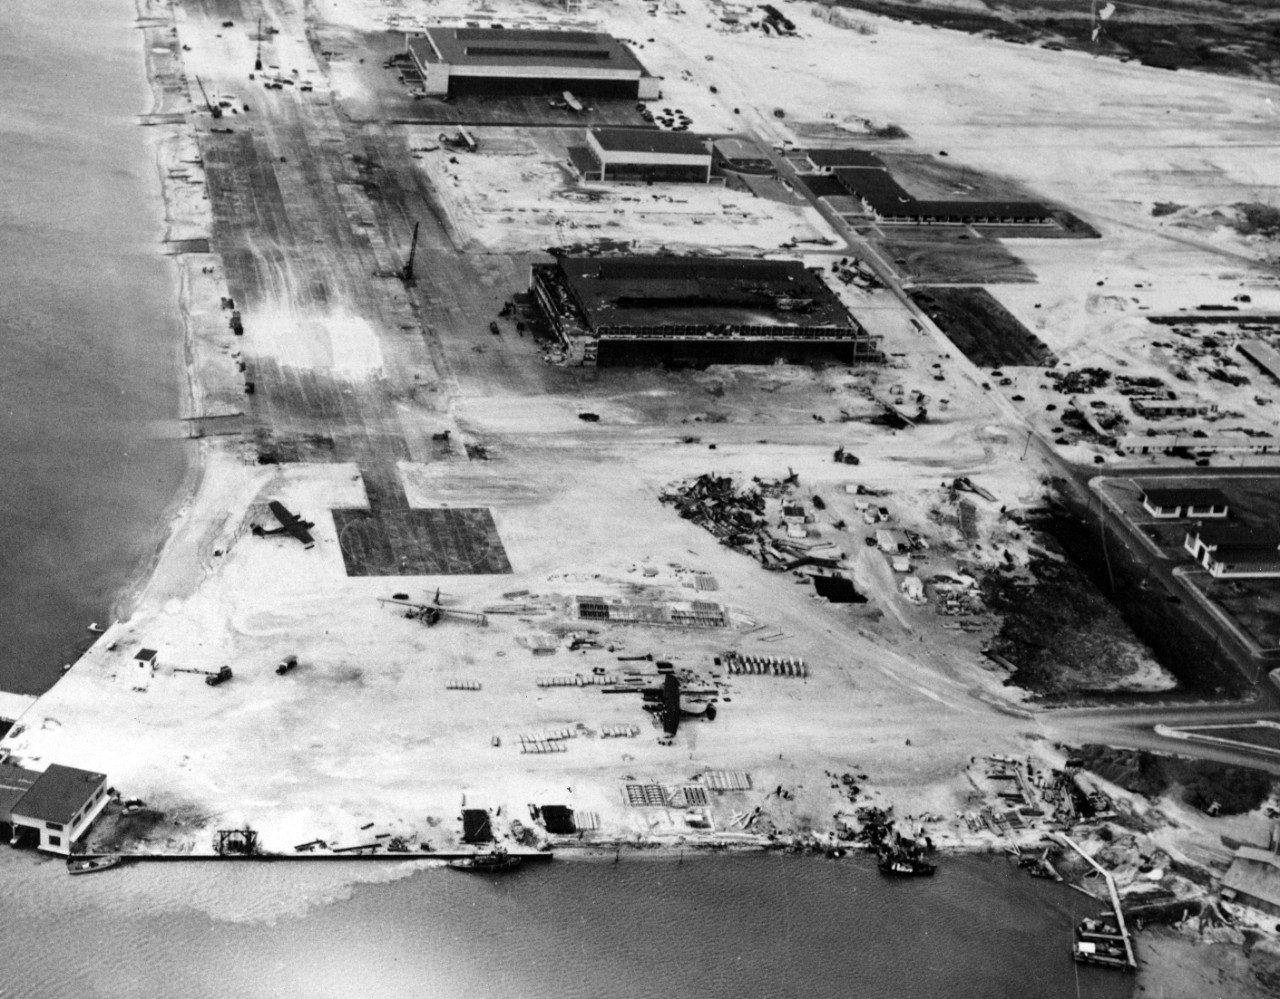 Naval Air Station two days after the attack on 9 December 1941.